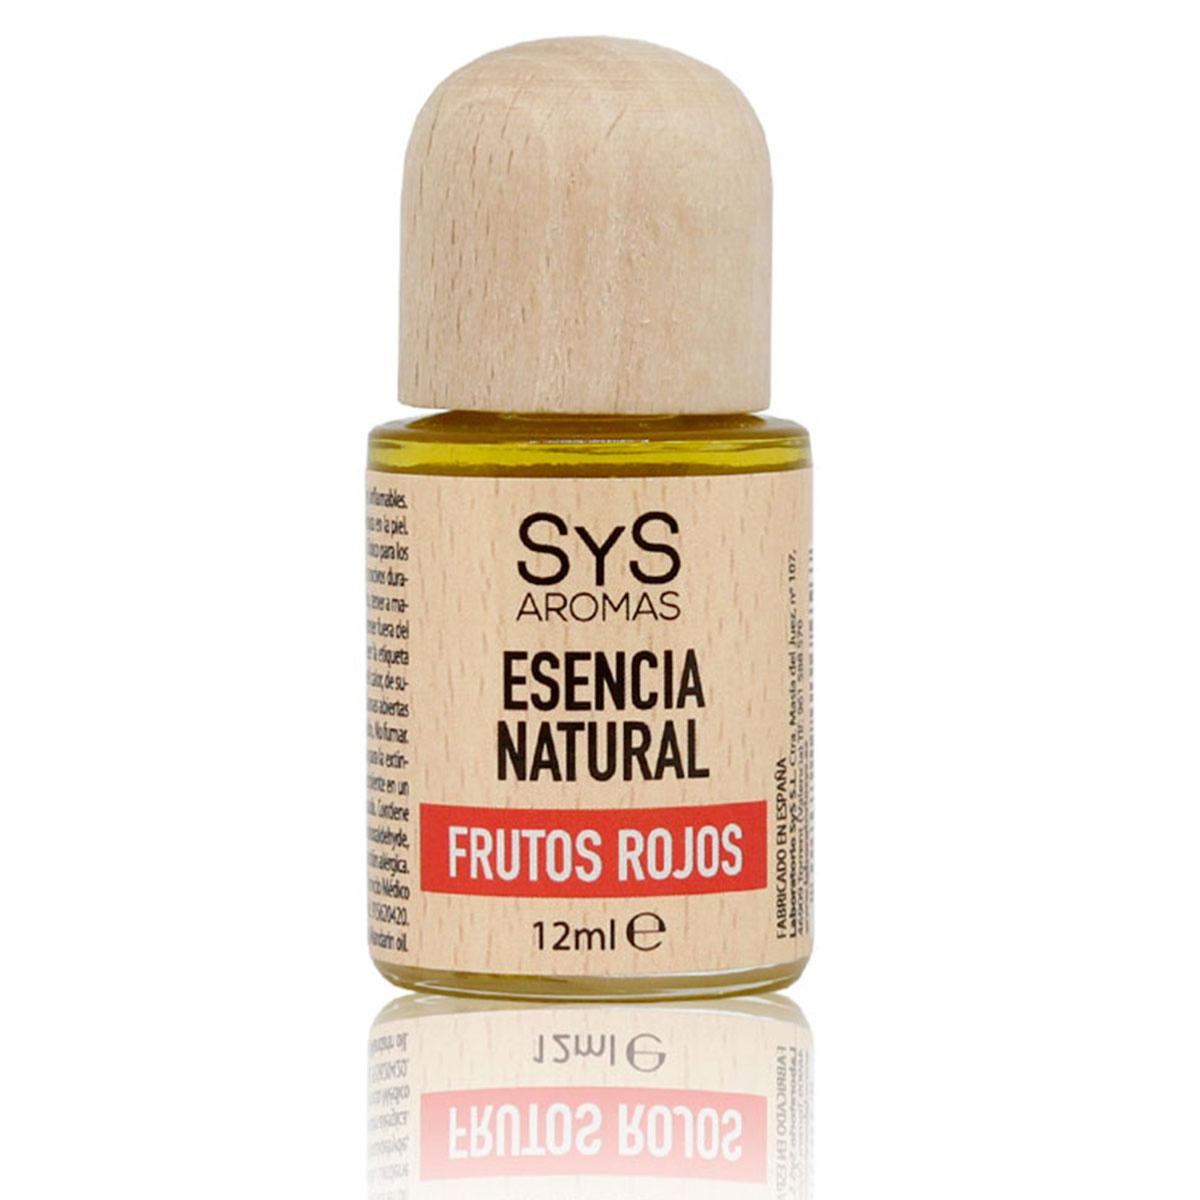 Esencia Natural de Frutos rojos 12ml - SyS